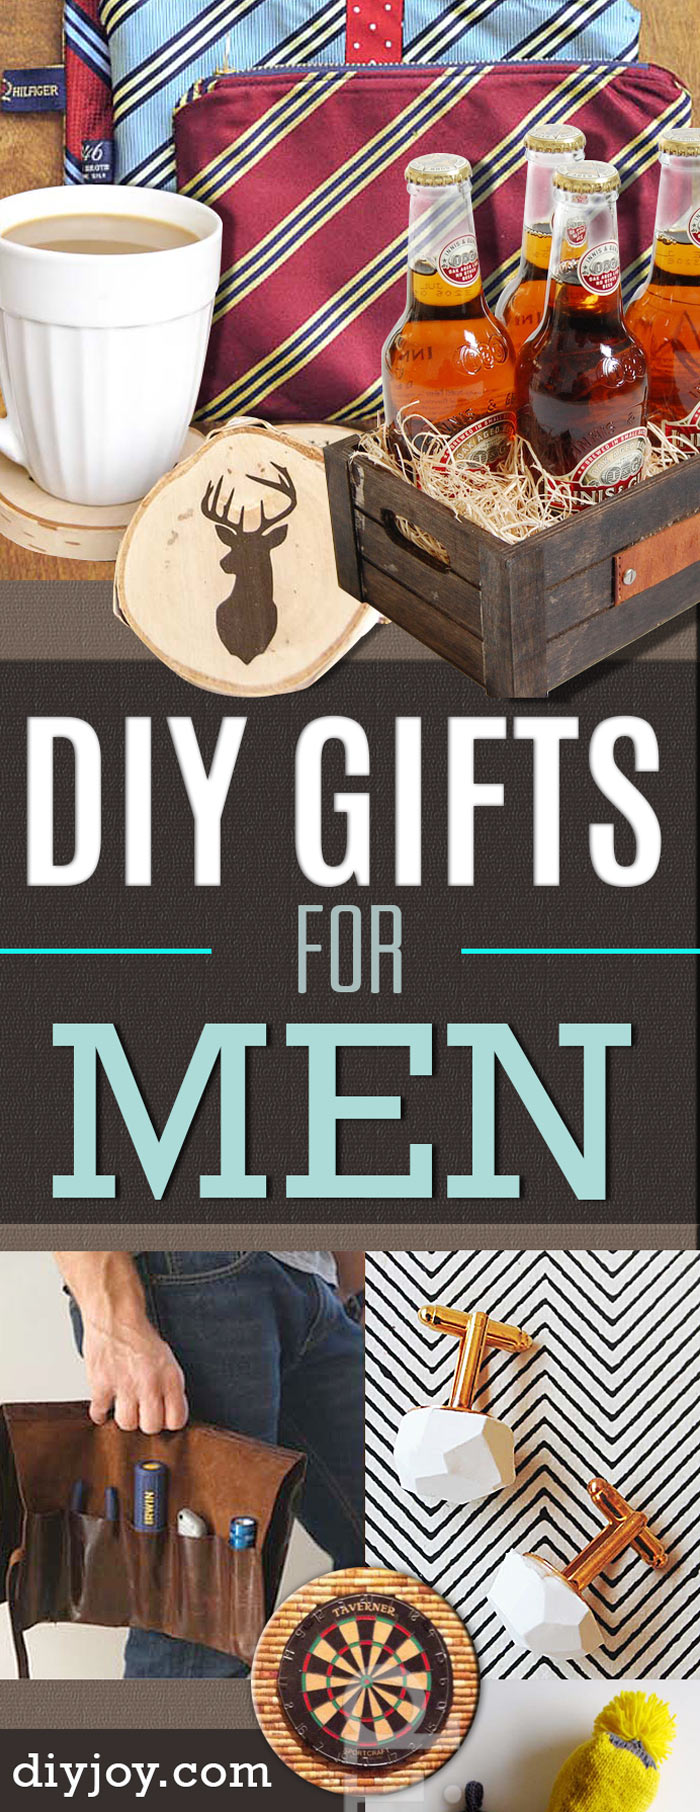 40 Diy Gifts For Men